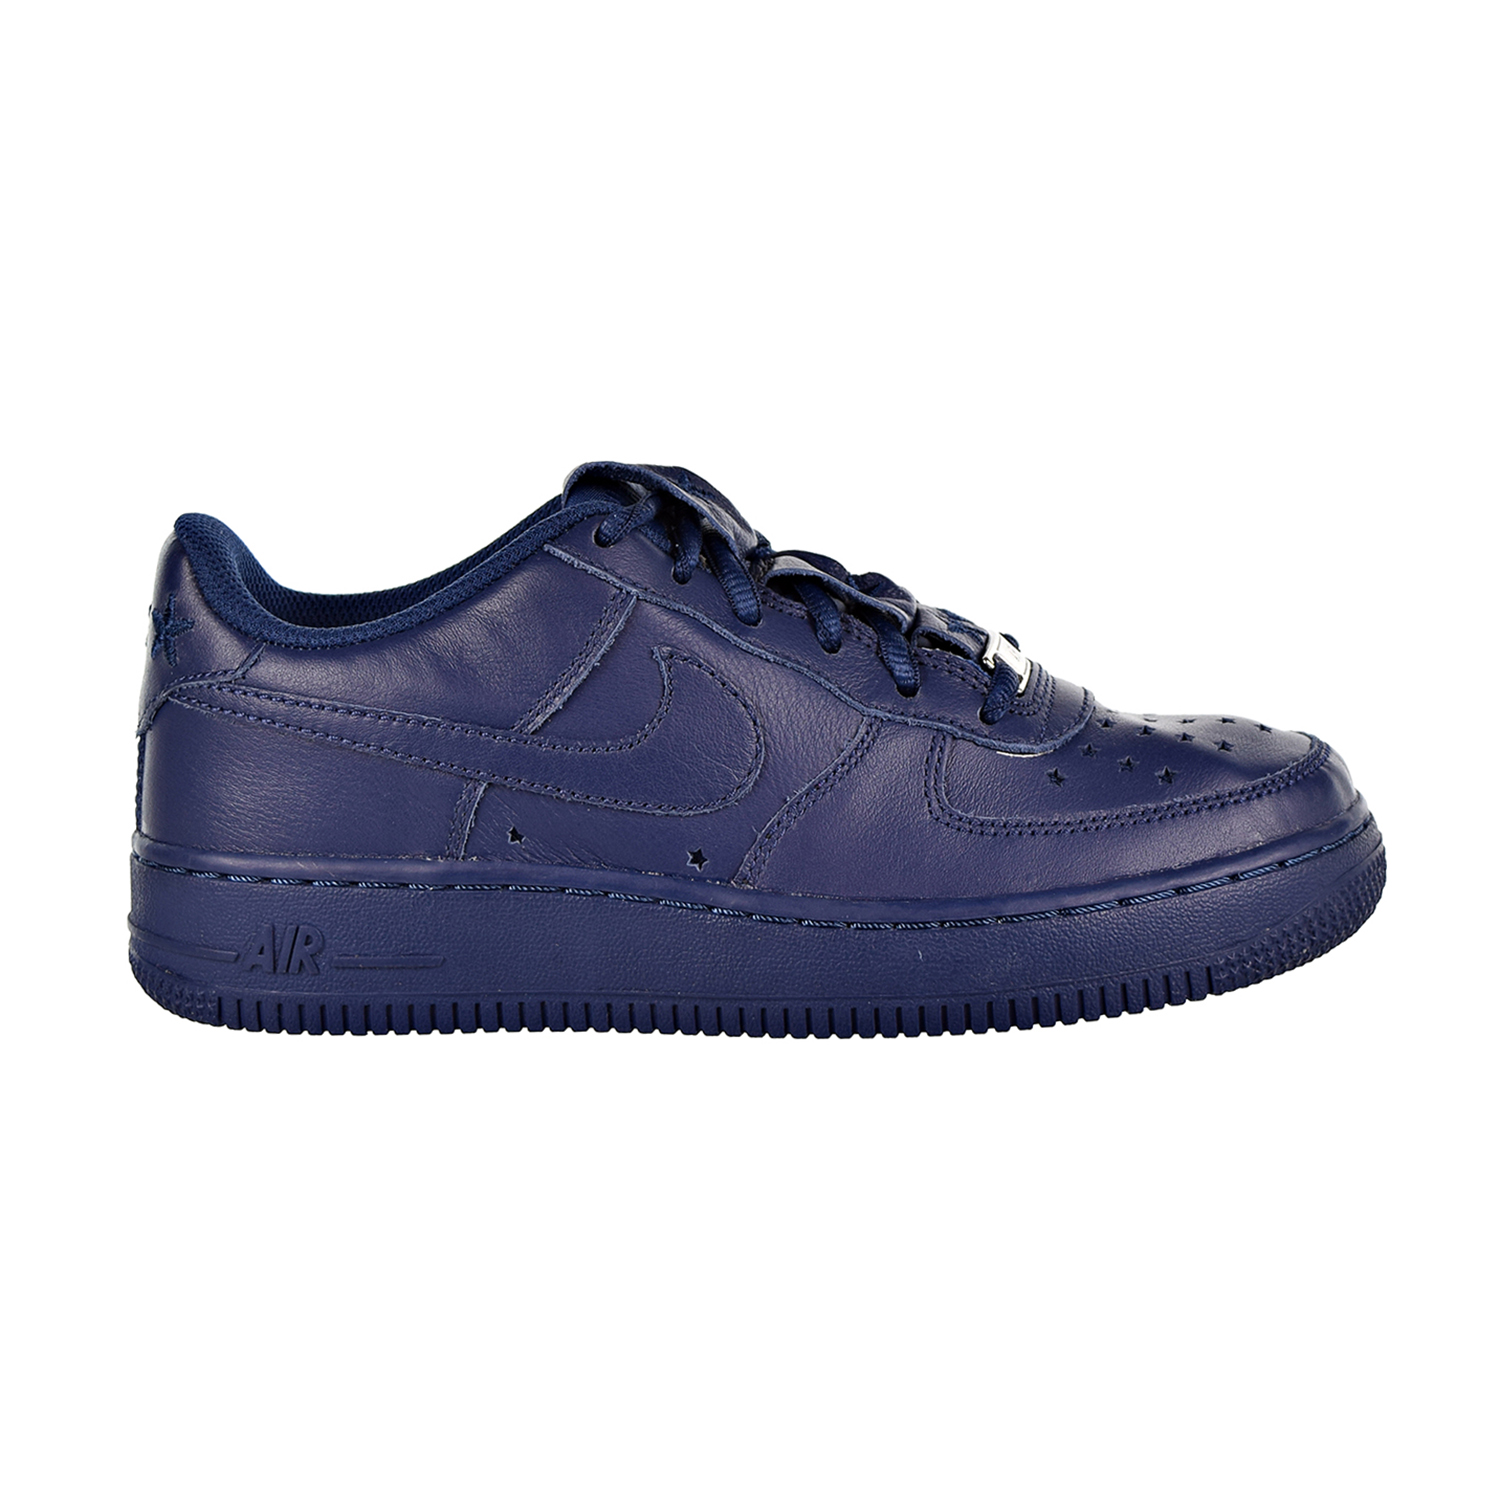 Details about Nike Air Force 1 QS Big Kids' Shoes Navy AR0688 400